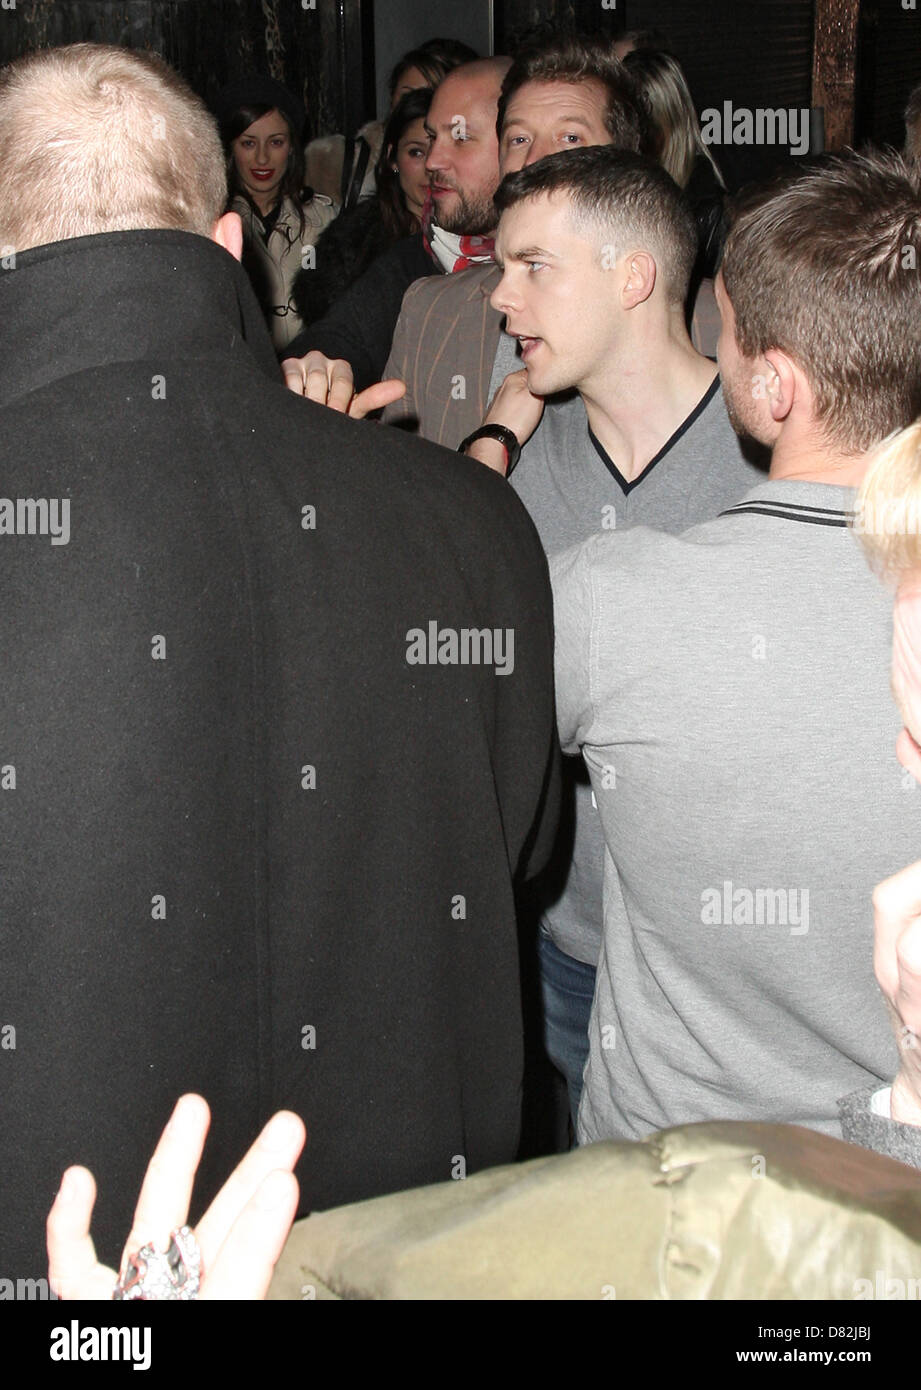 Russell Tovey is thrown out by the bouncers at The Box nightclub in Soho. London, England - 17.02.12 - Stock Image